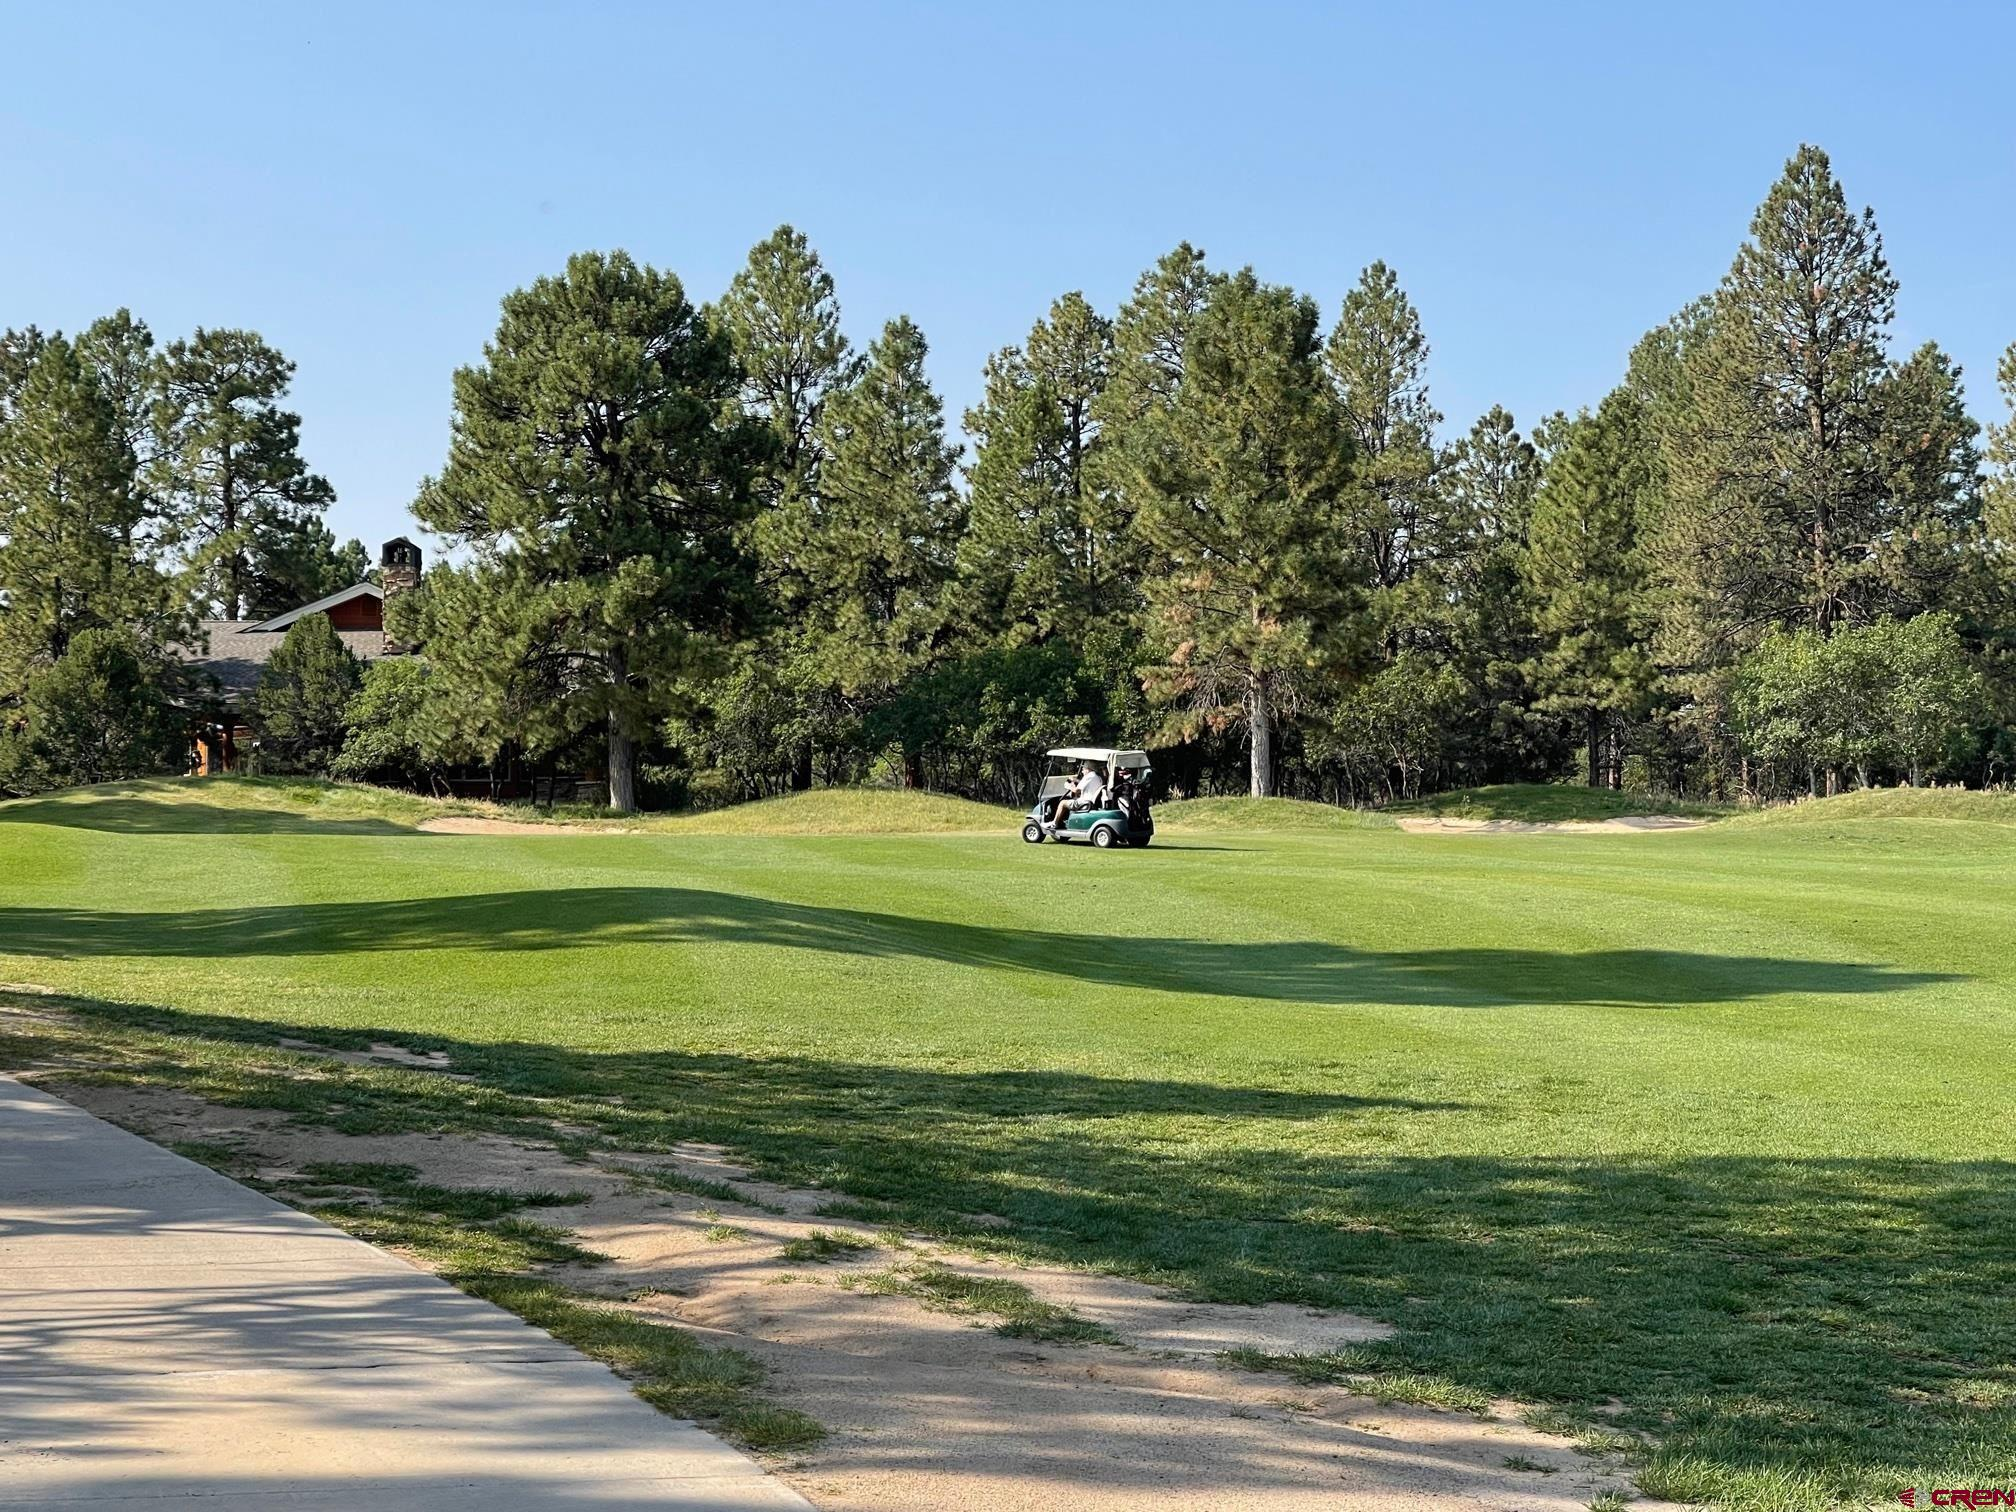 HUGE opportunity to get a golf course lot adjacent to the 2nd Fairway.  This lot is rather flat and usable and stacked up with Ponderosa Pines.  Easily accessible on a paved road to the lot line.  There are peek-a-boo views of the San Juans and Cimarrons.  This lot has private feel and has the openness of the fairway.  Power, water and natural gas are to the property line.  An engineered septic would be required.  Come take a look-see. The $3000 Golf and Country Club transfer fee shall be paid for by the Buyer.  A $1600+ membership fee is due annually and the amount can be subject to change.  HOA fees are $407/year.